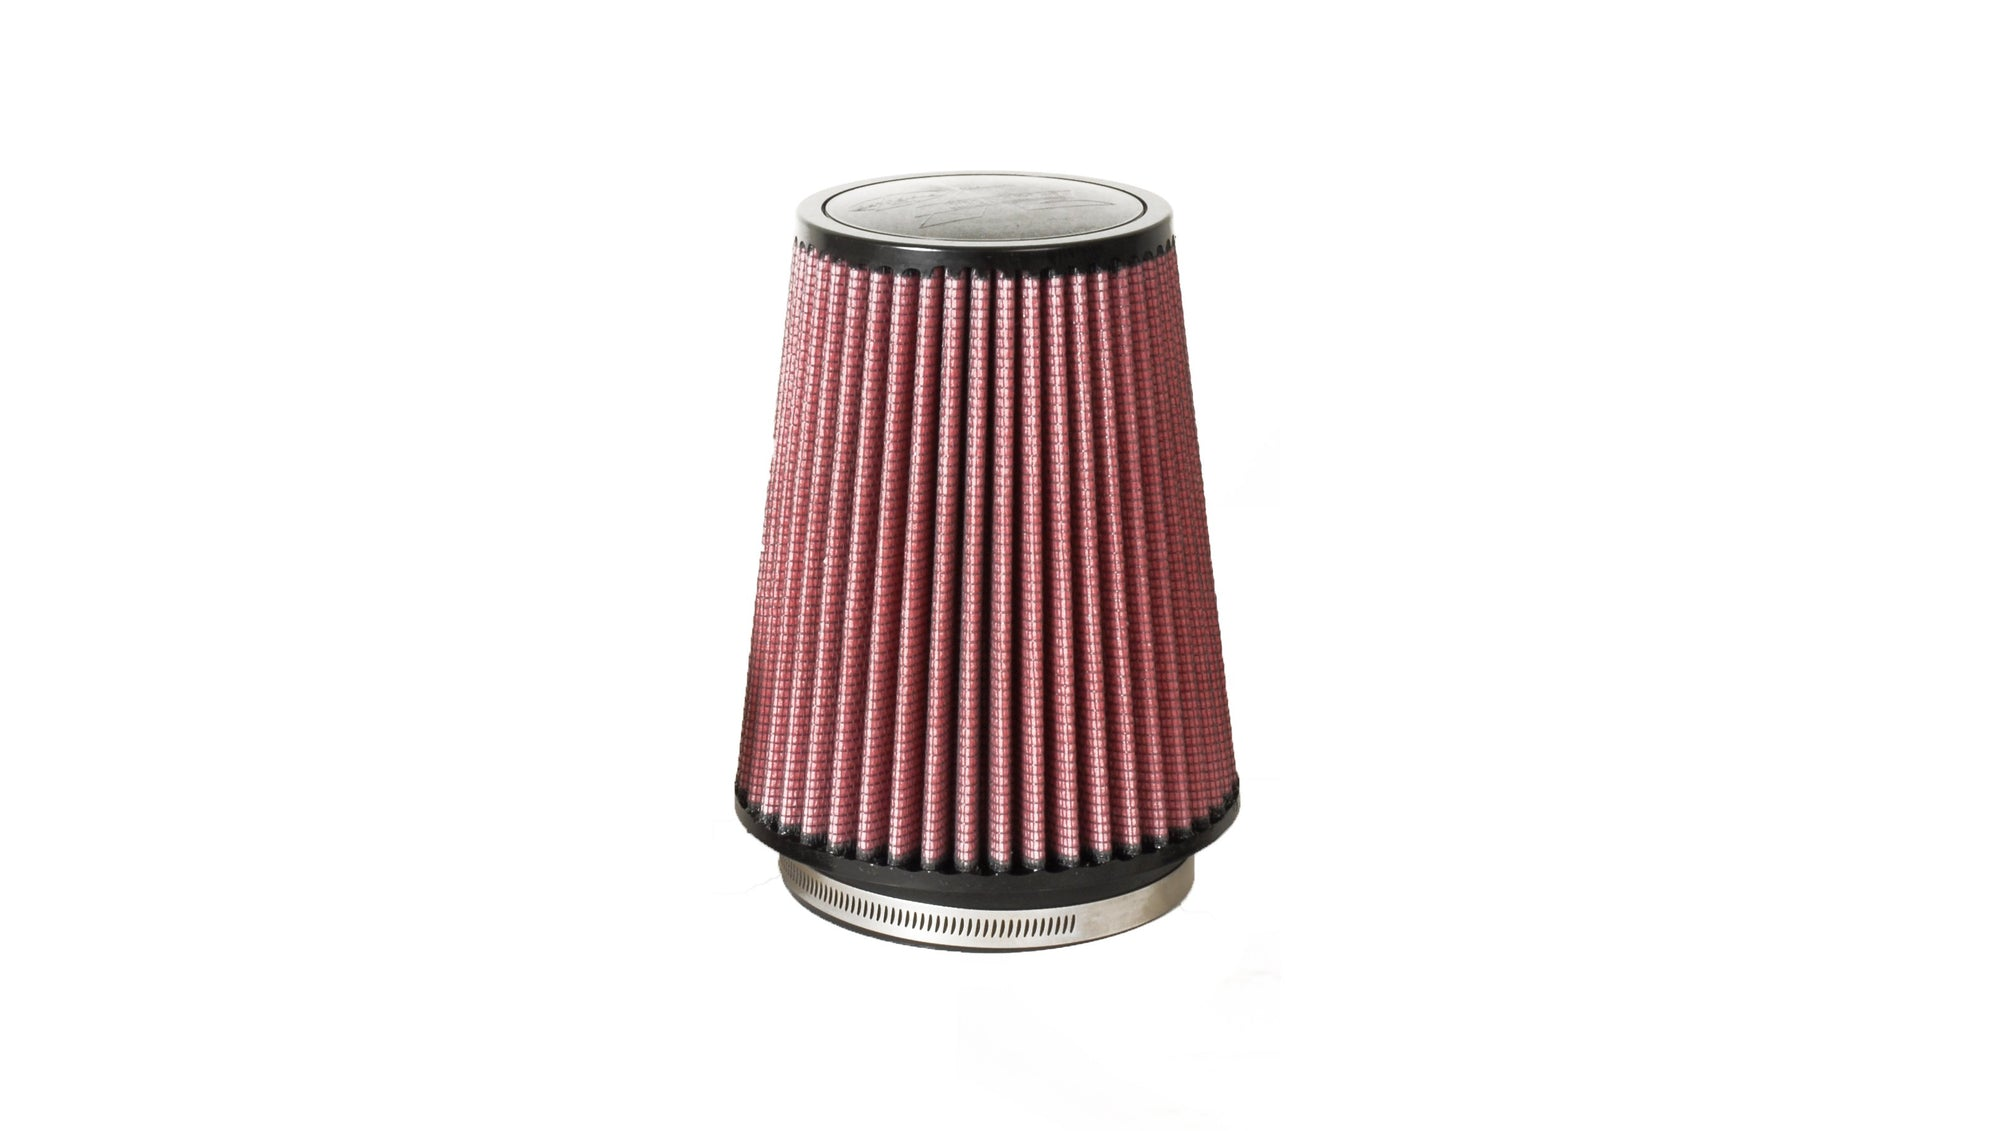 1996-2002 Dodge Ram 2500 and 3500 Oiled Air Intake Air Filter - 5151